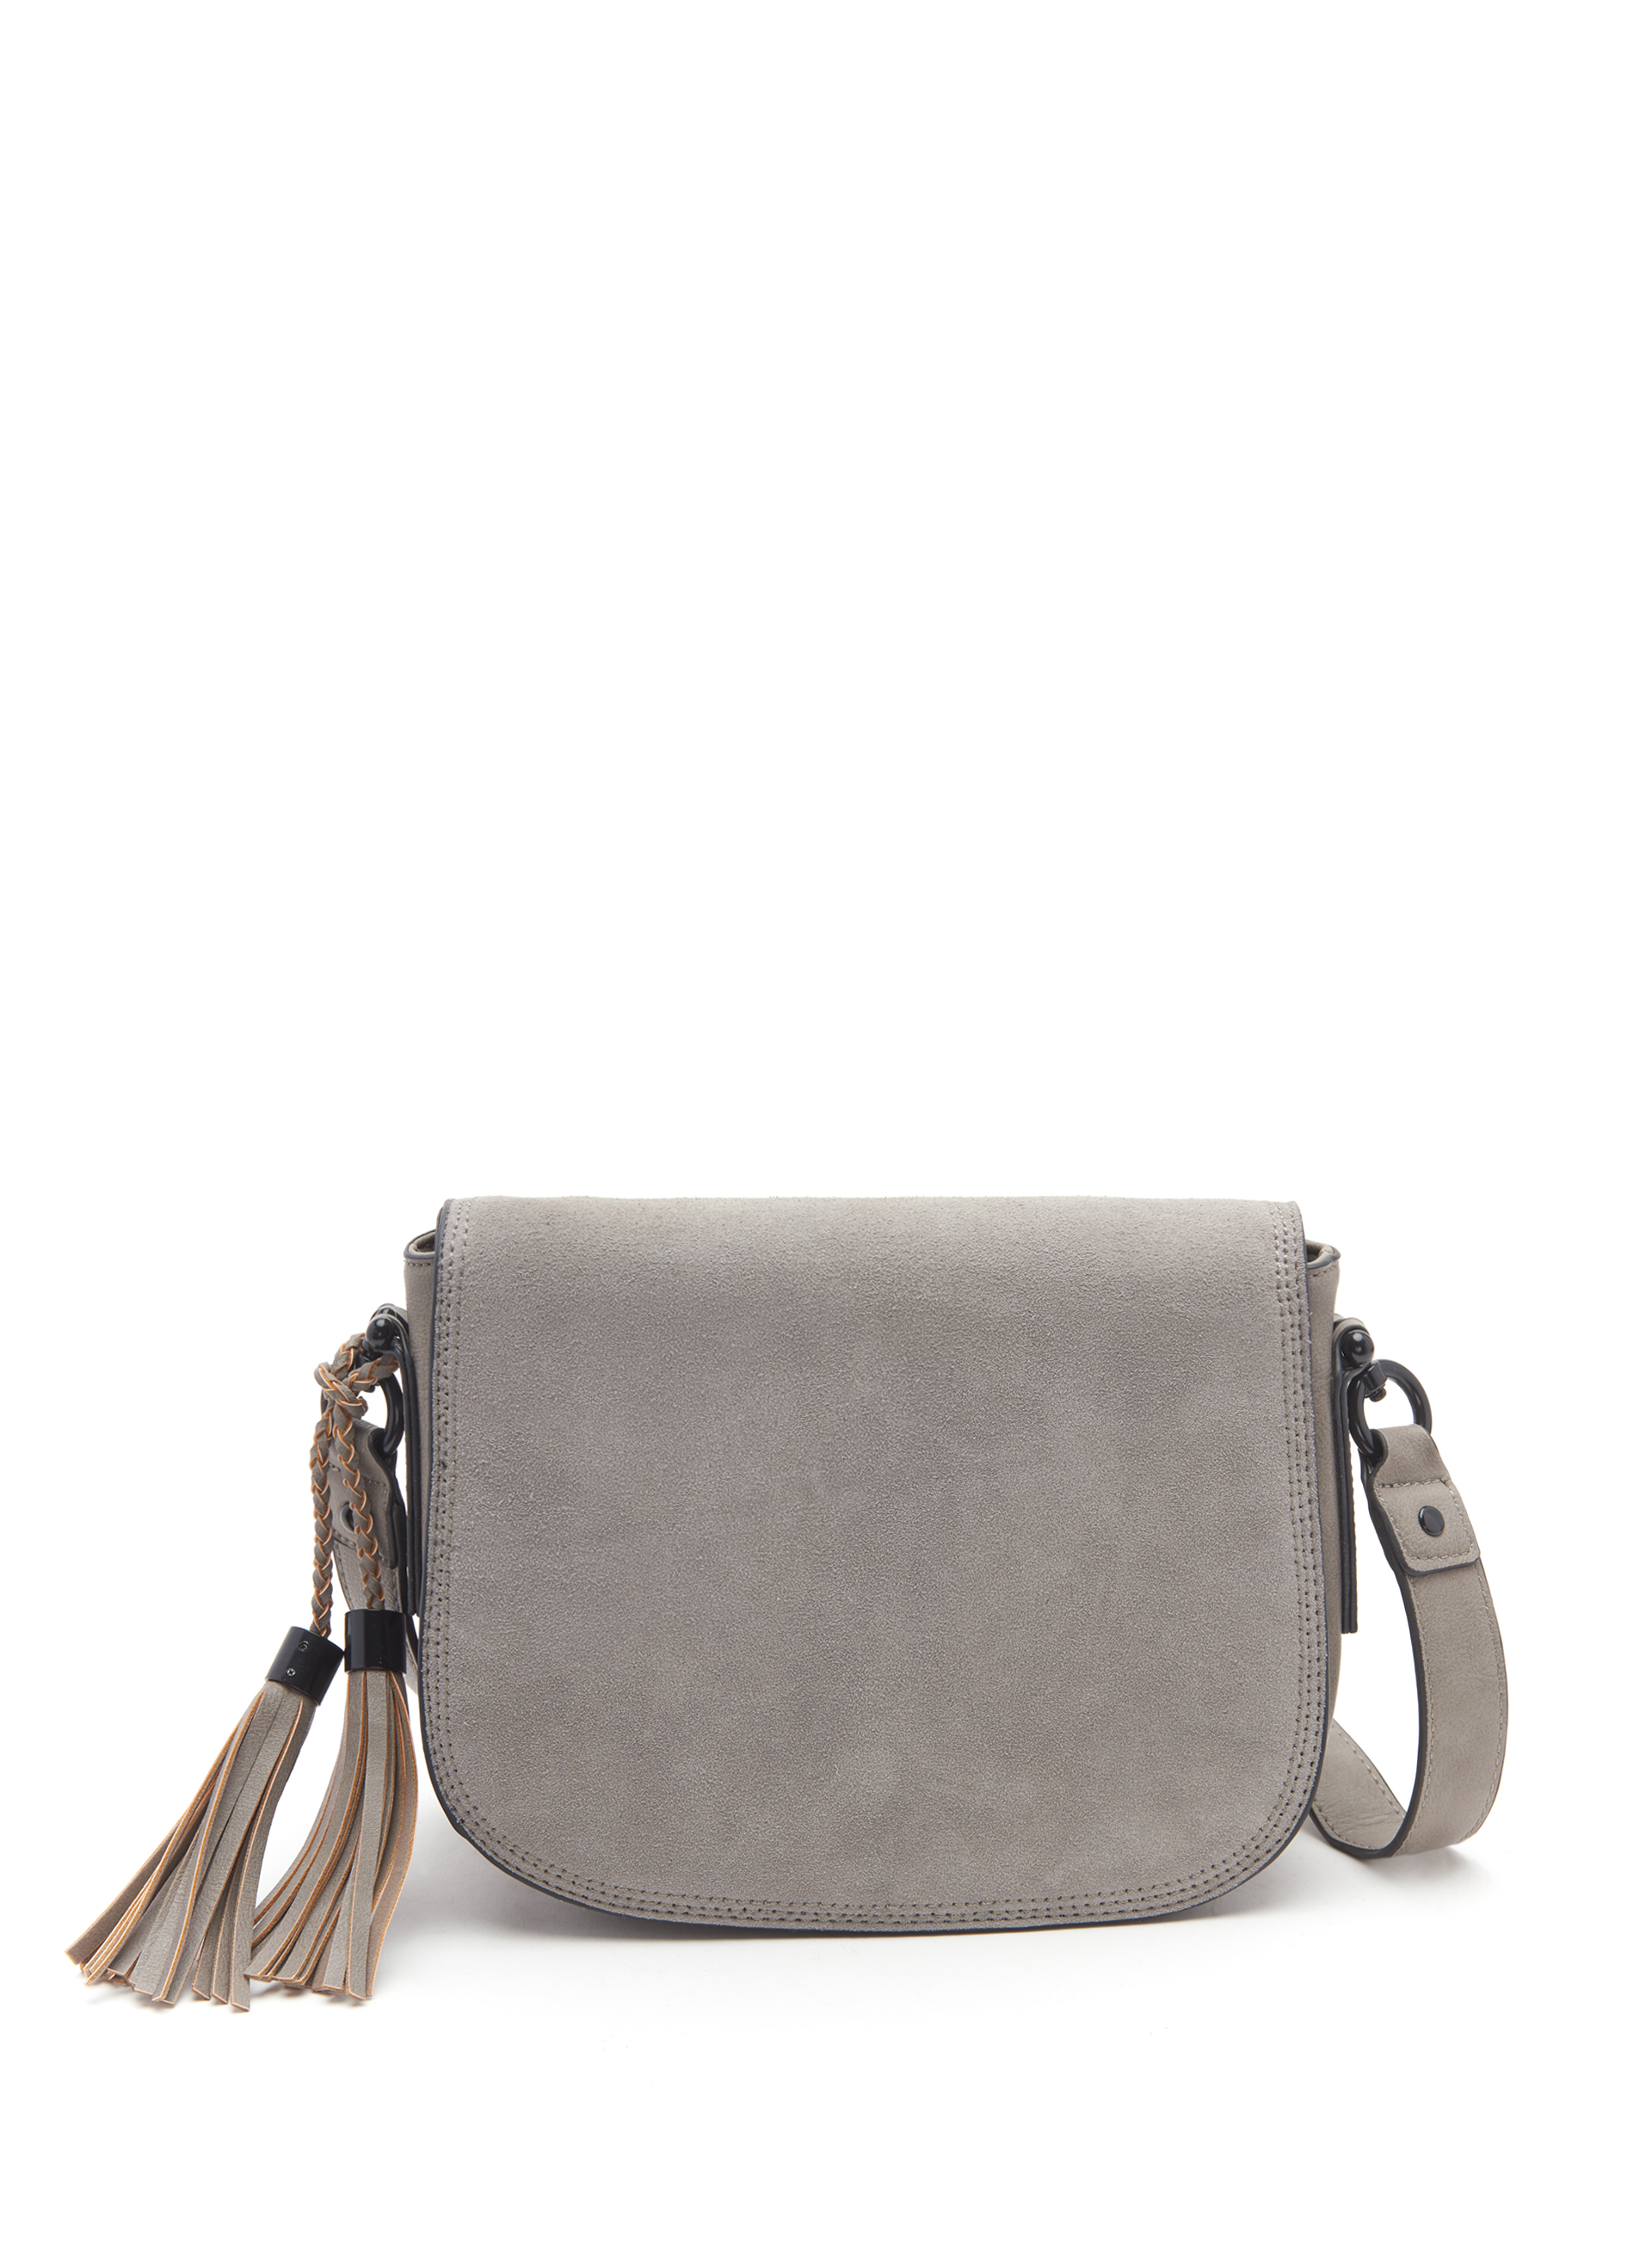 Suede Flap Saddle Bag, Grey, hi-res